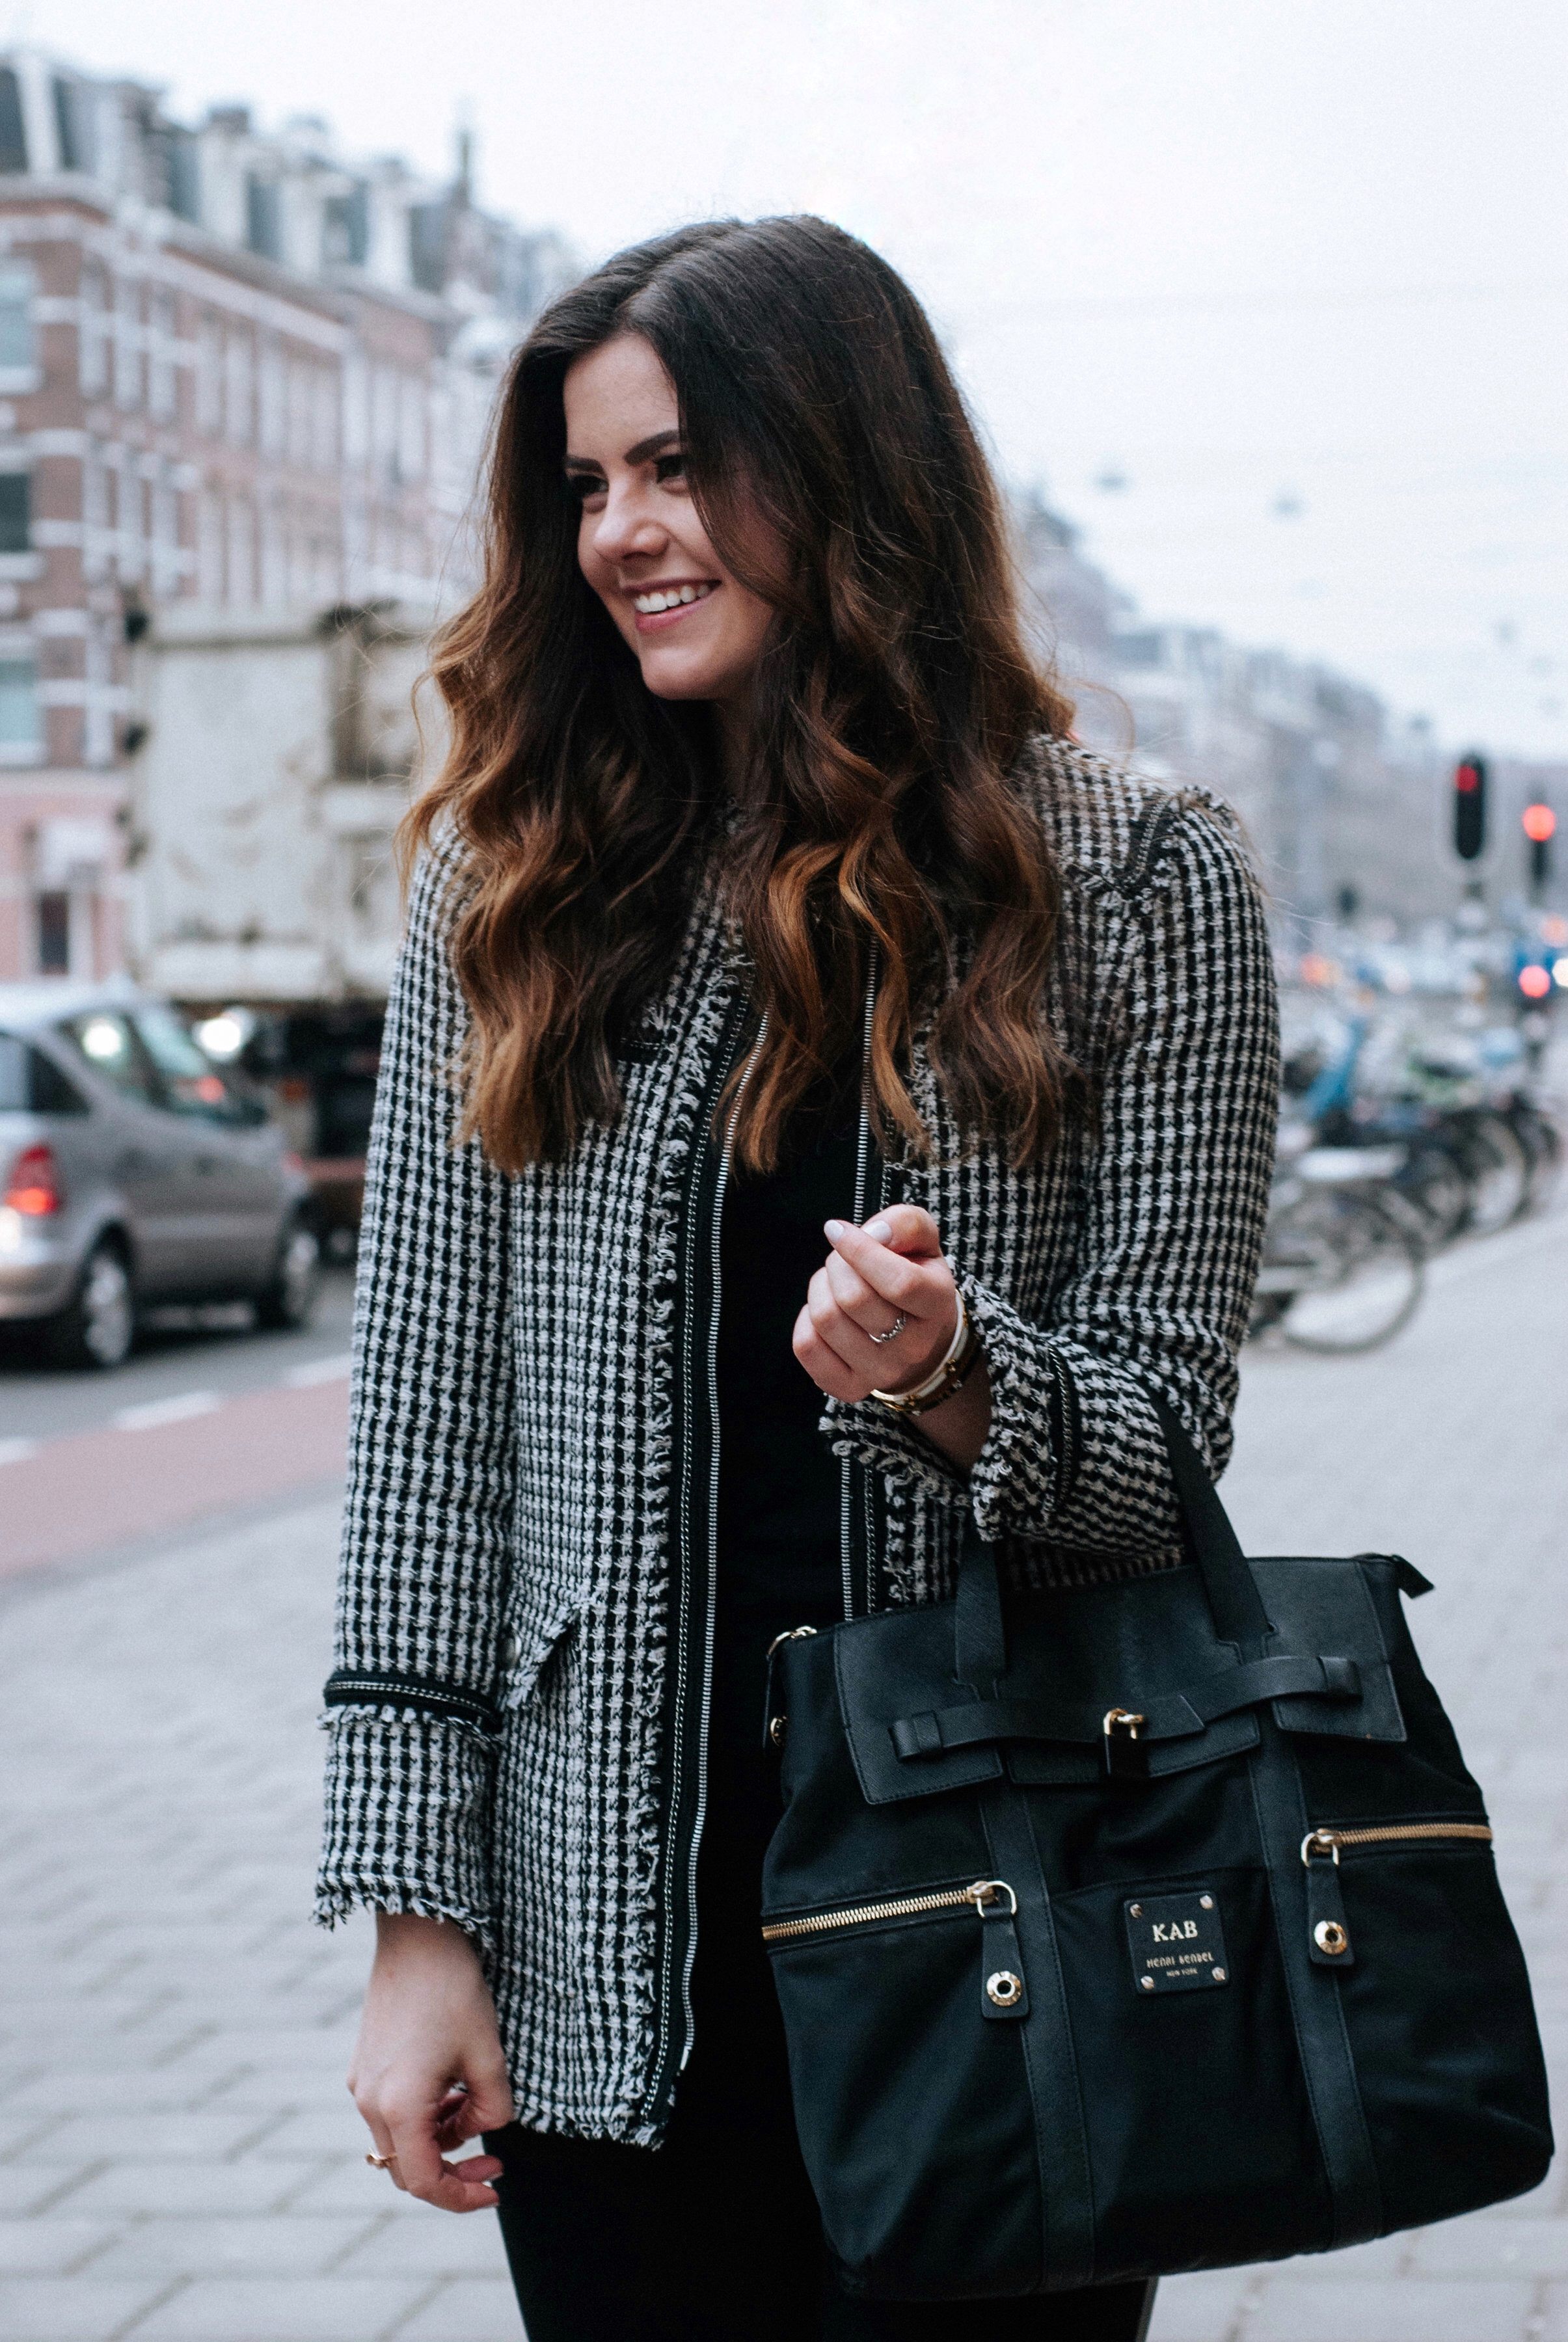 Interviews On Creative Living Interior: How To Dress For A Creative Job Interview